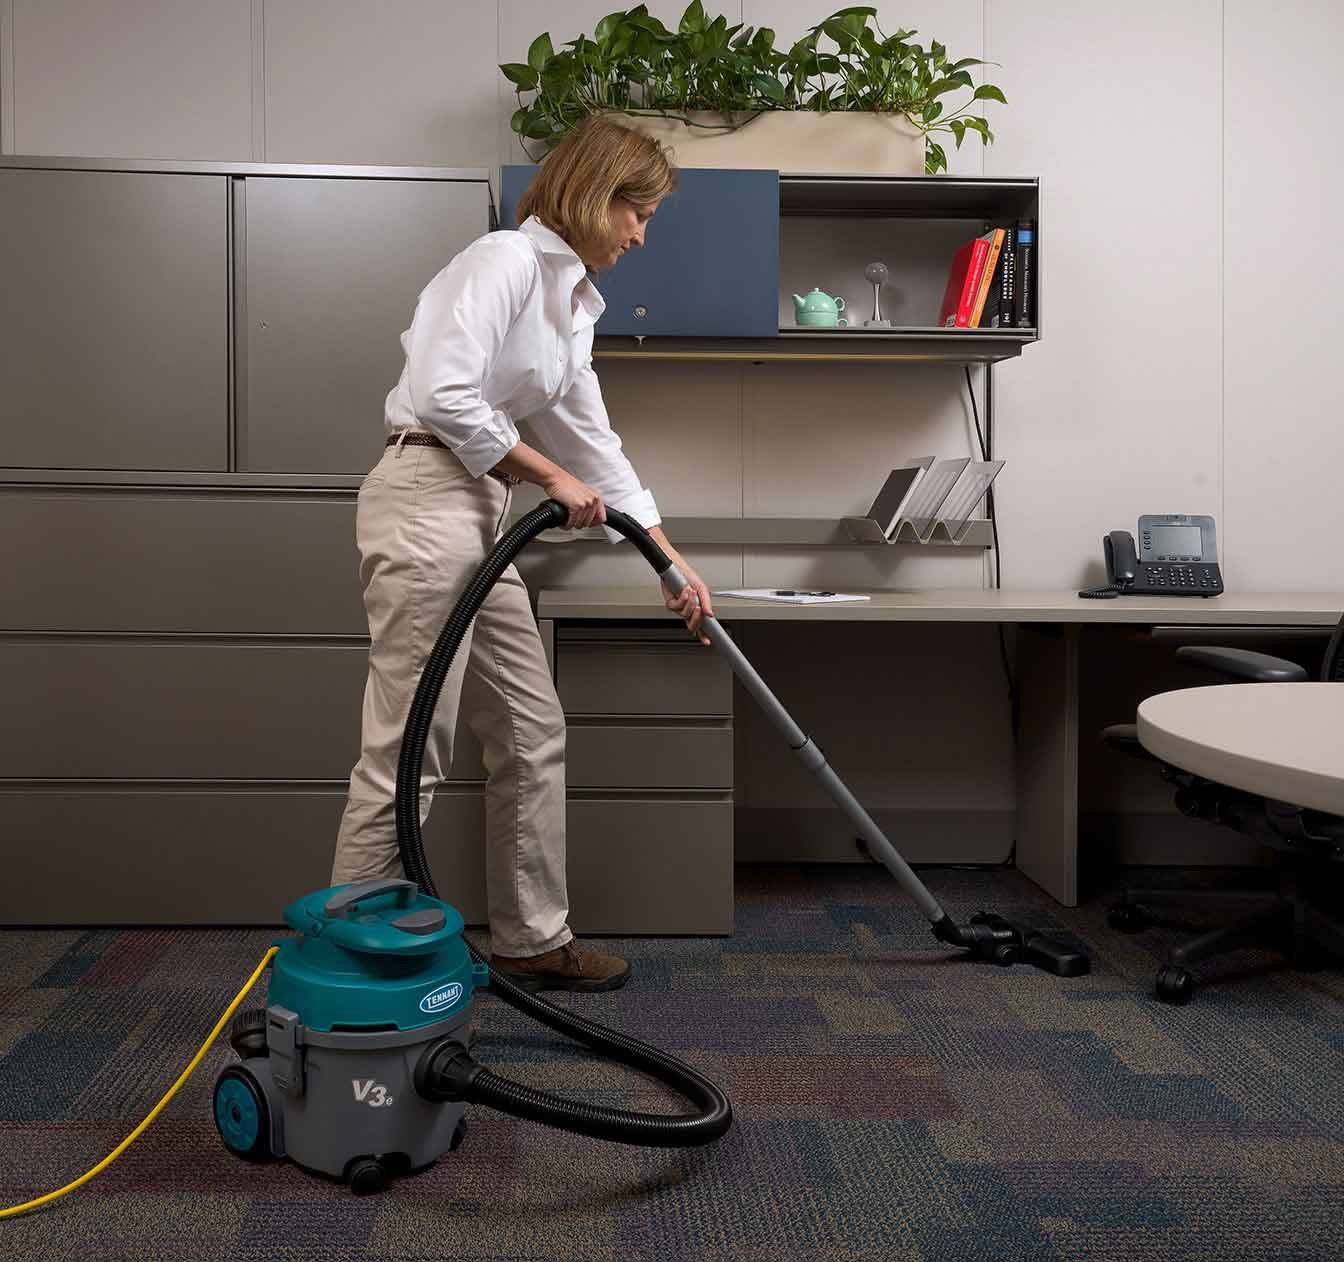 V3e Canister Vacuum vacuuming an office.